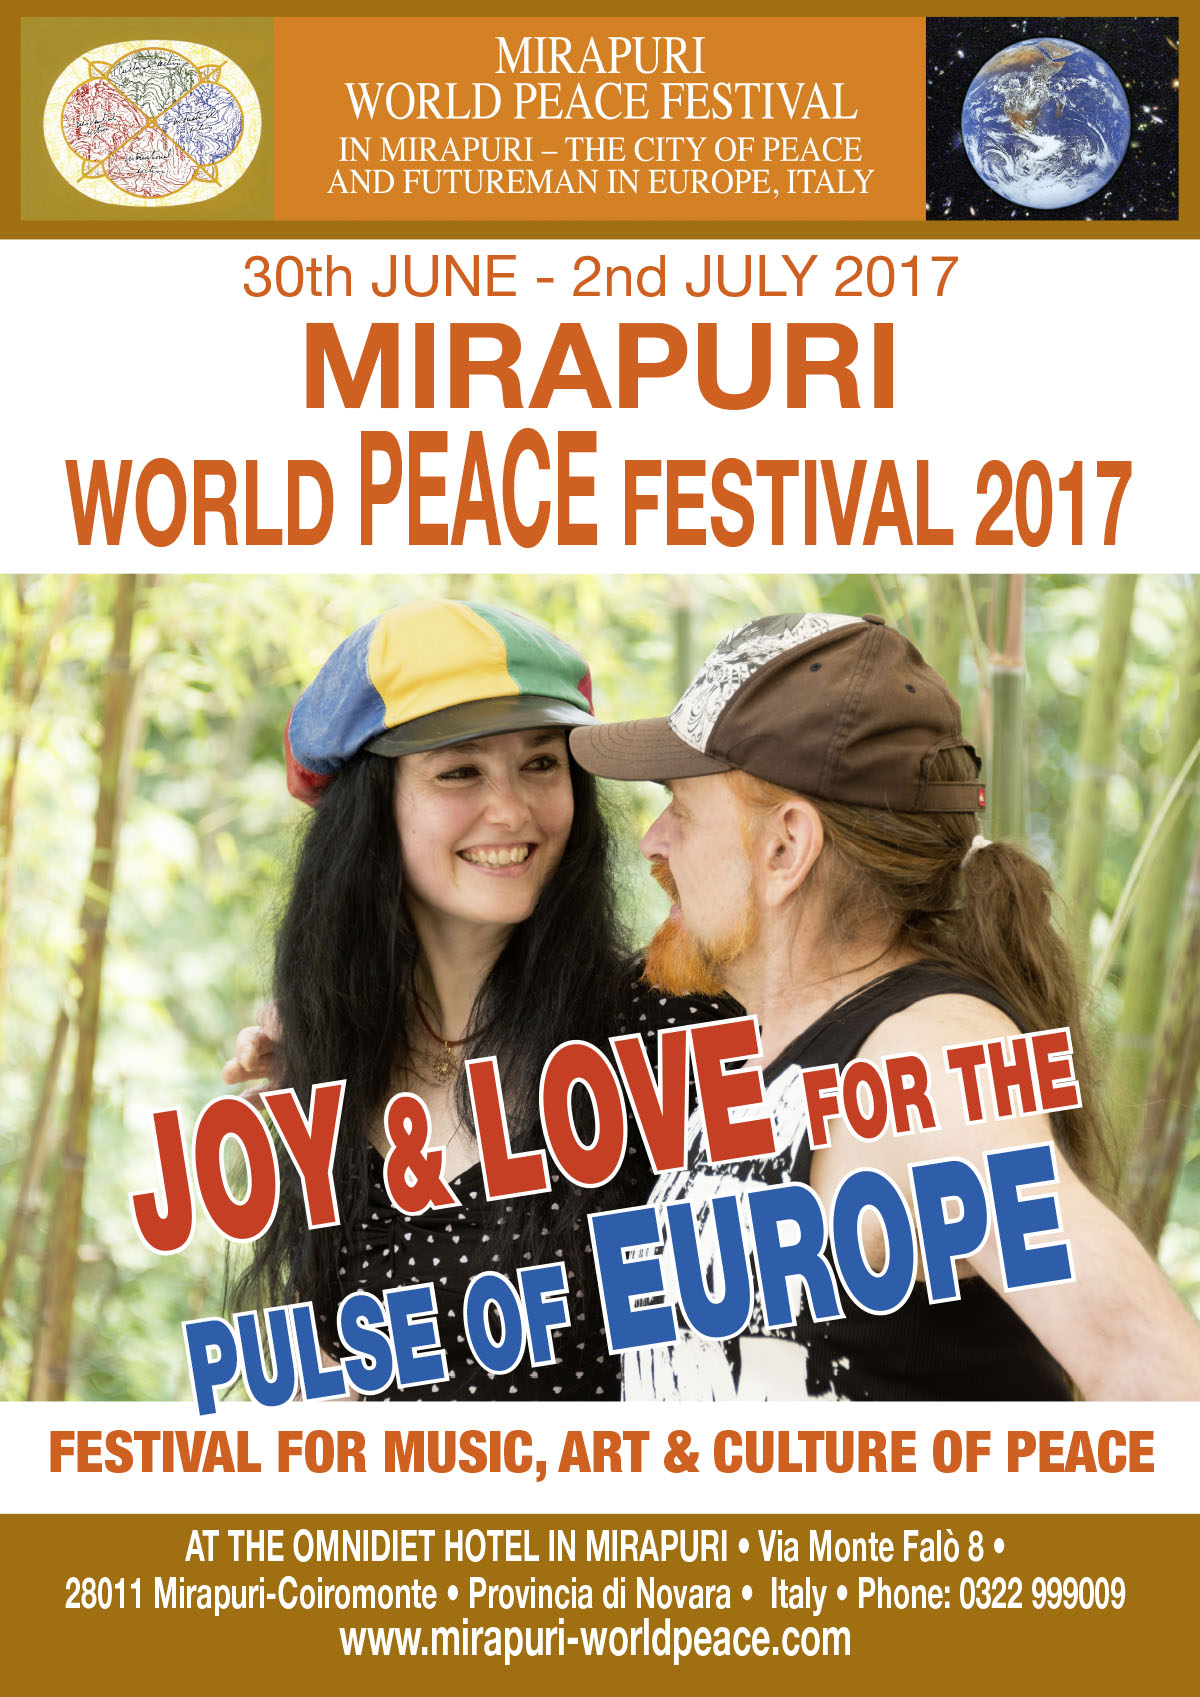 Upcoming Event Mirapuri World Peace Festival  With The Theme Joy Love For The Pulse Of Europe From Th June Nd July